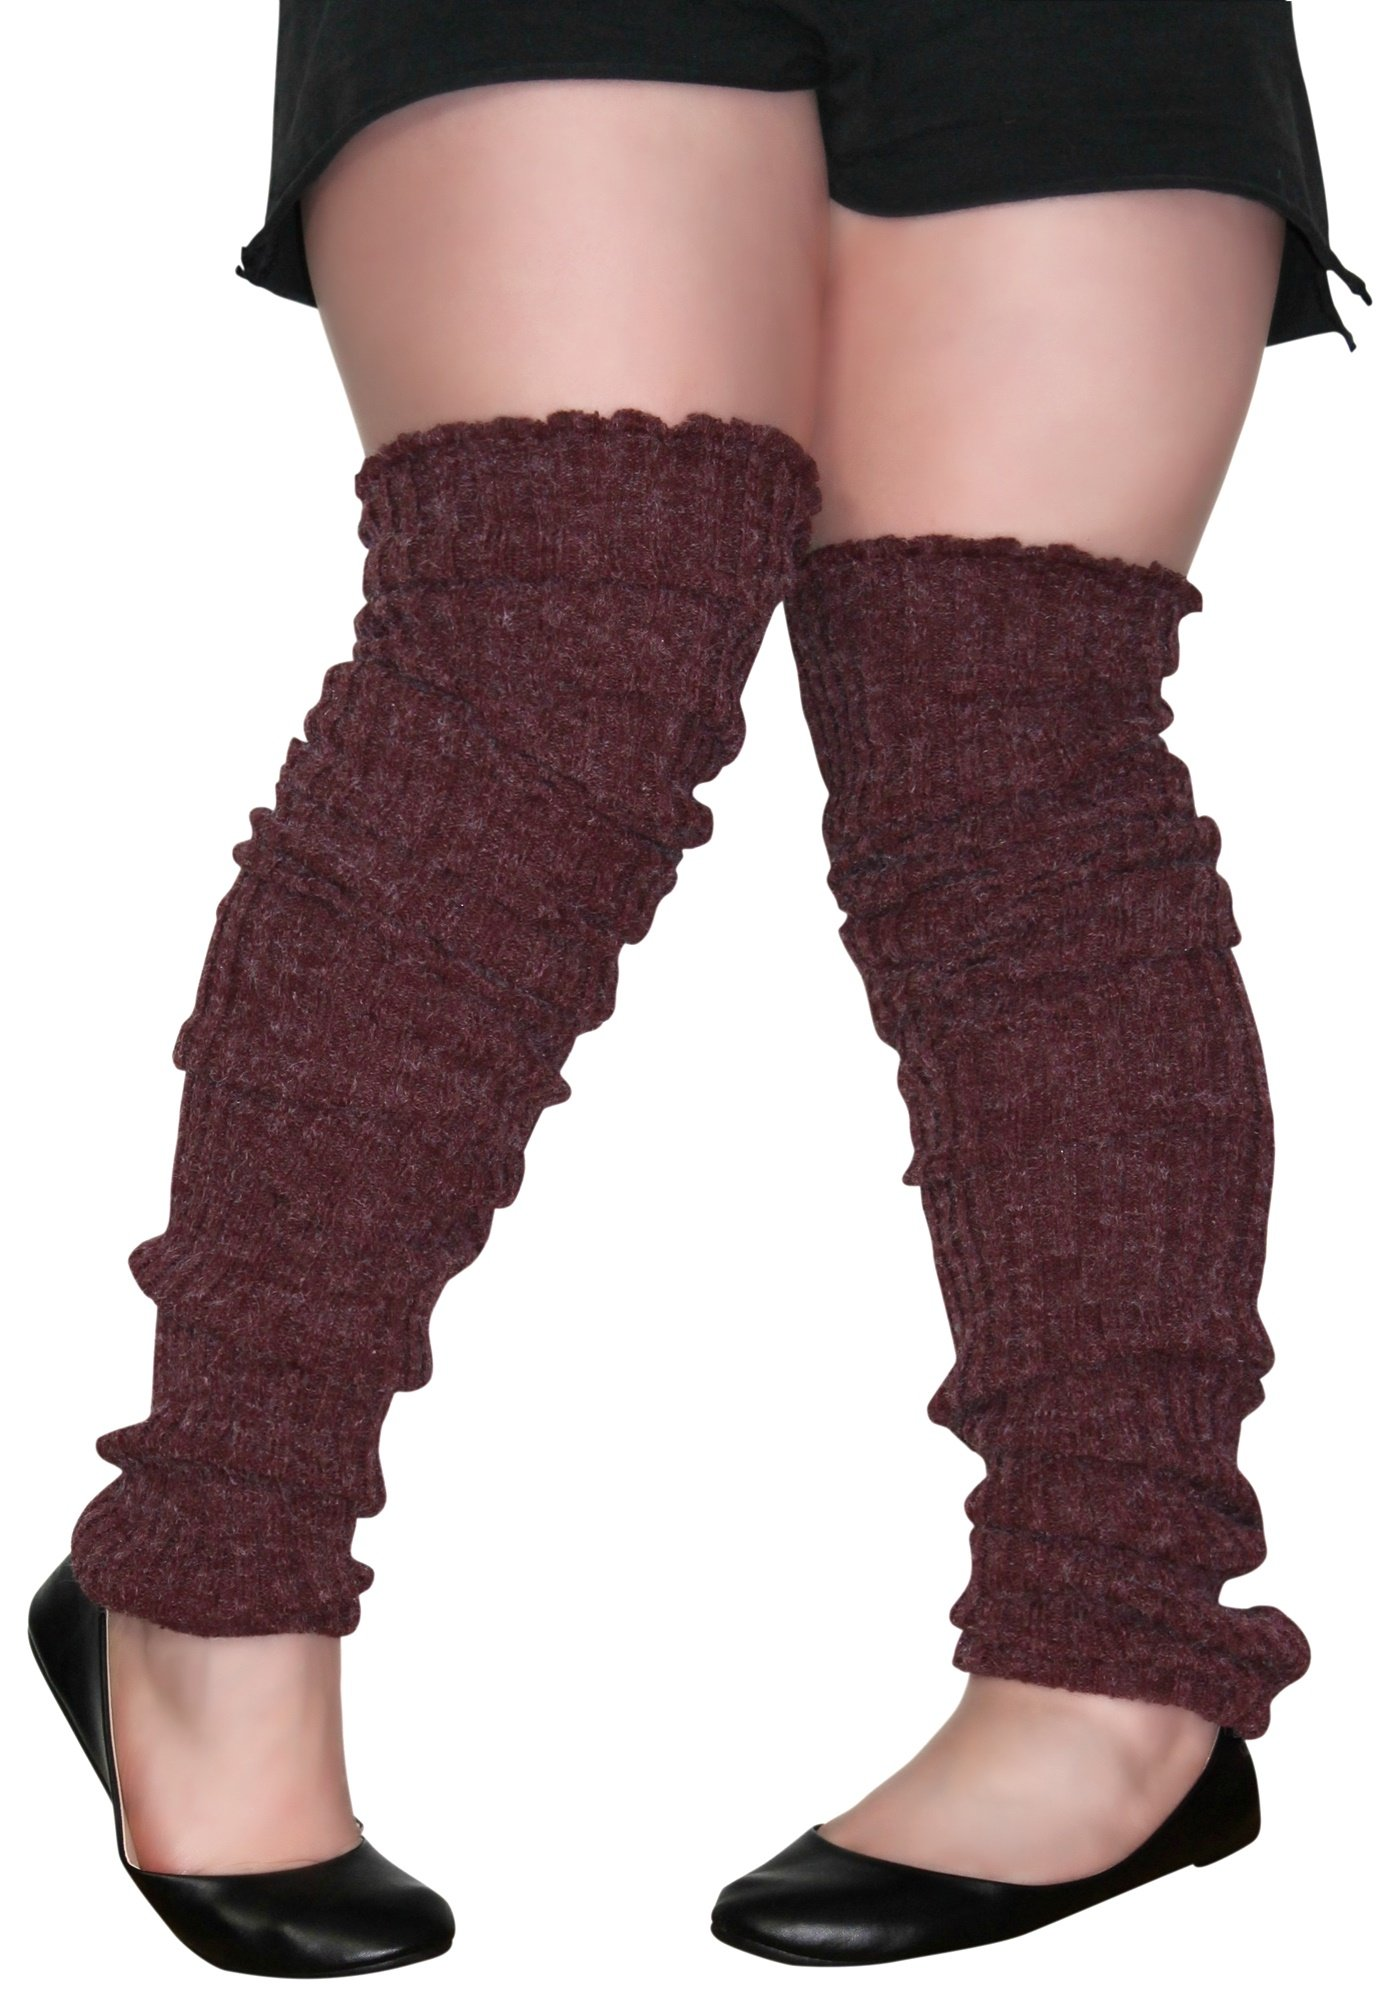 Plus Size Leg Warmers Over The Knee Super Long Cable Knit ...